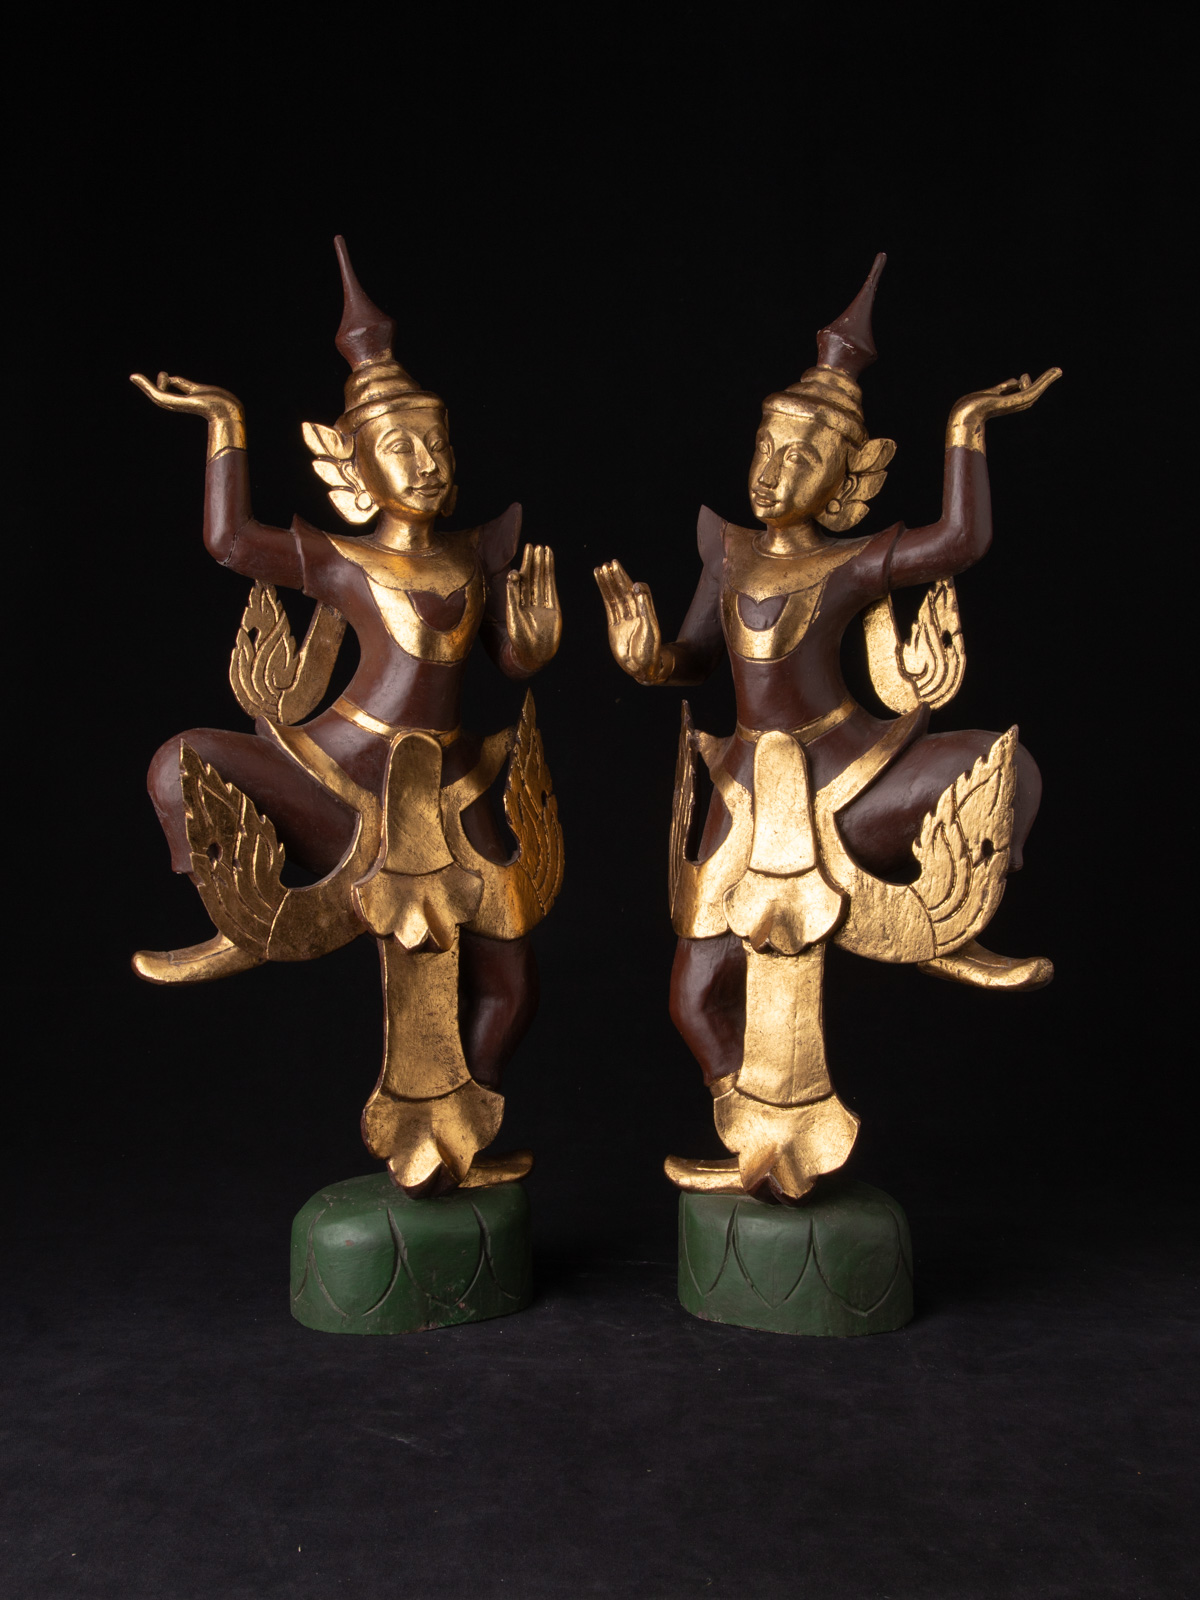 Pair of Burmese dancing figures from Burma made from Wood